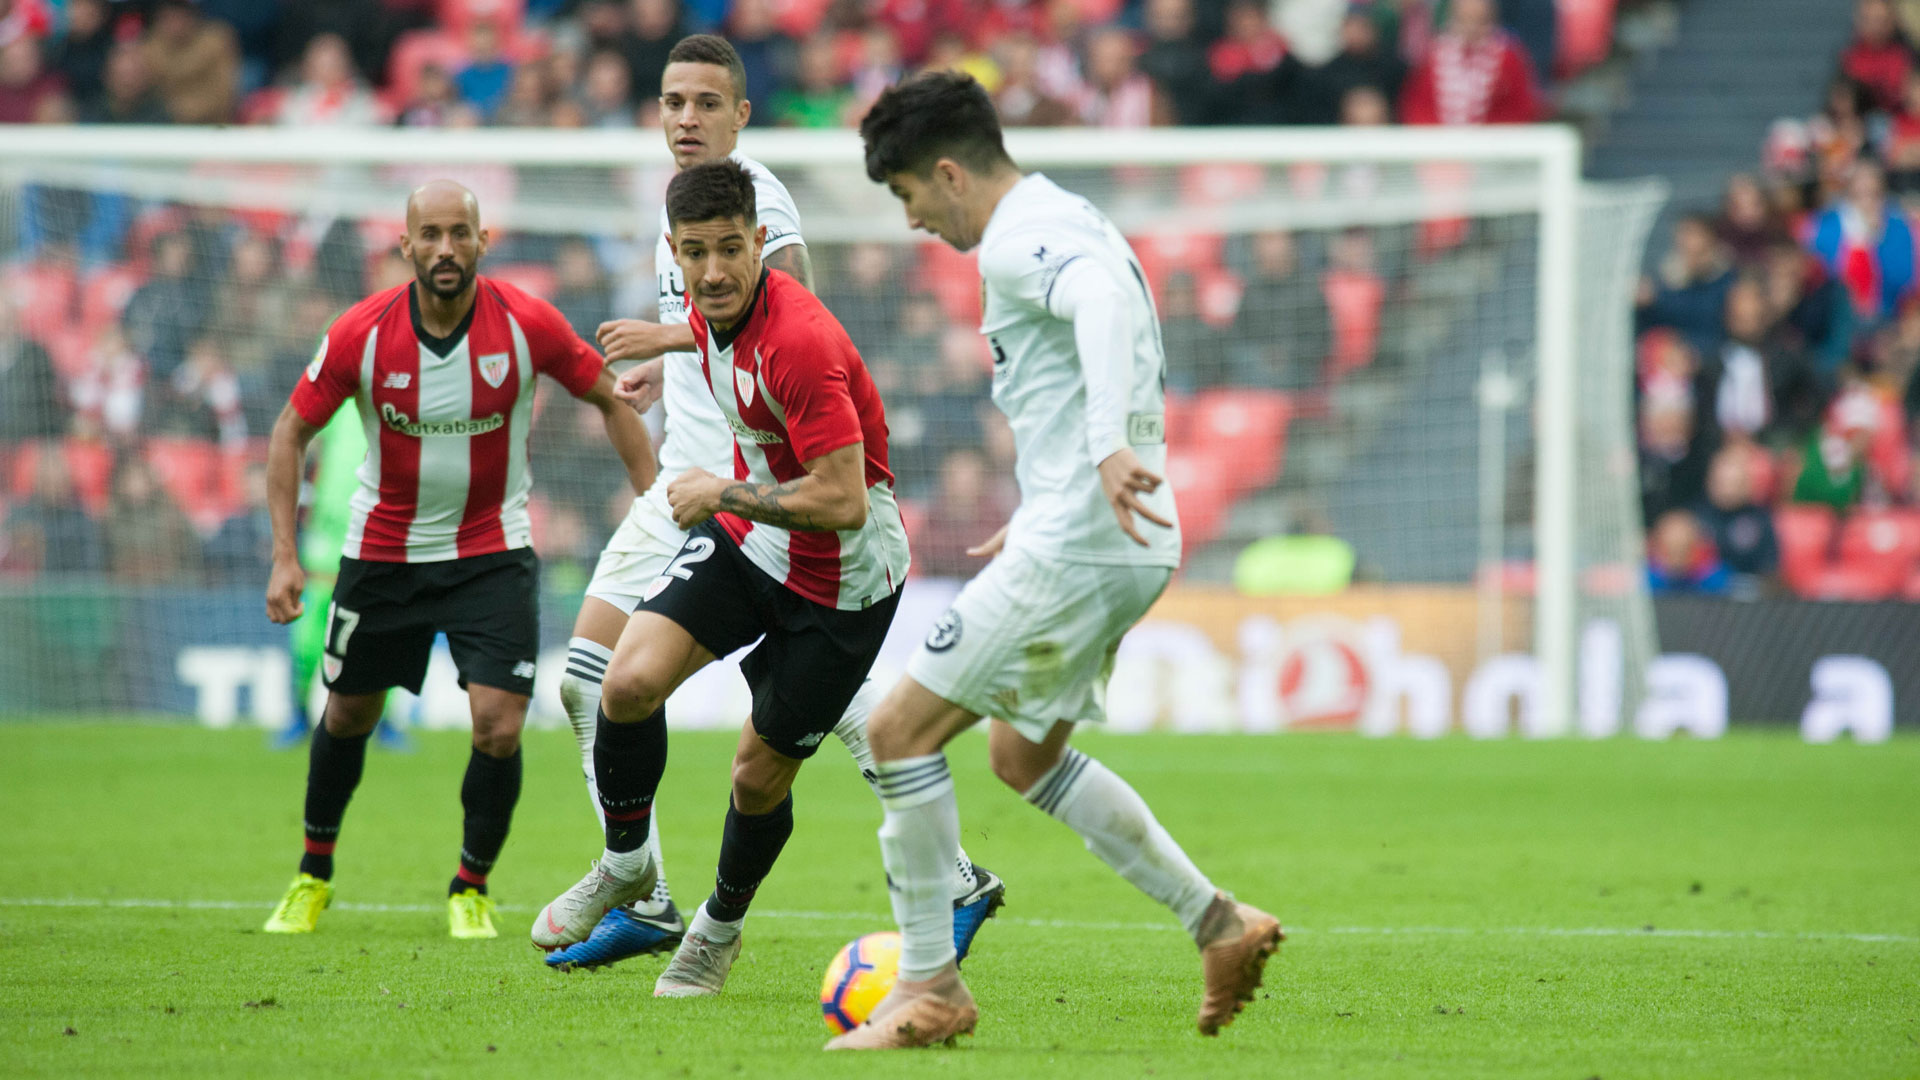 Valencia CF – Athletic Club: ticket withdrawal